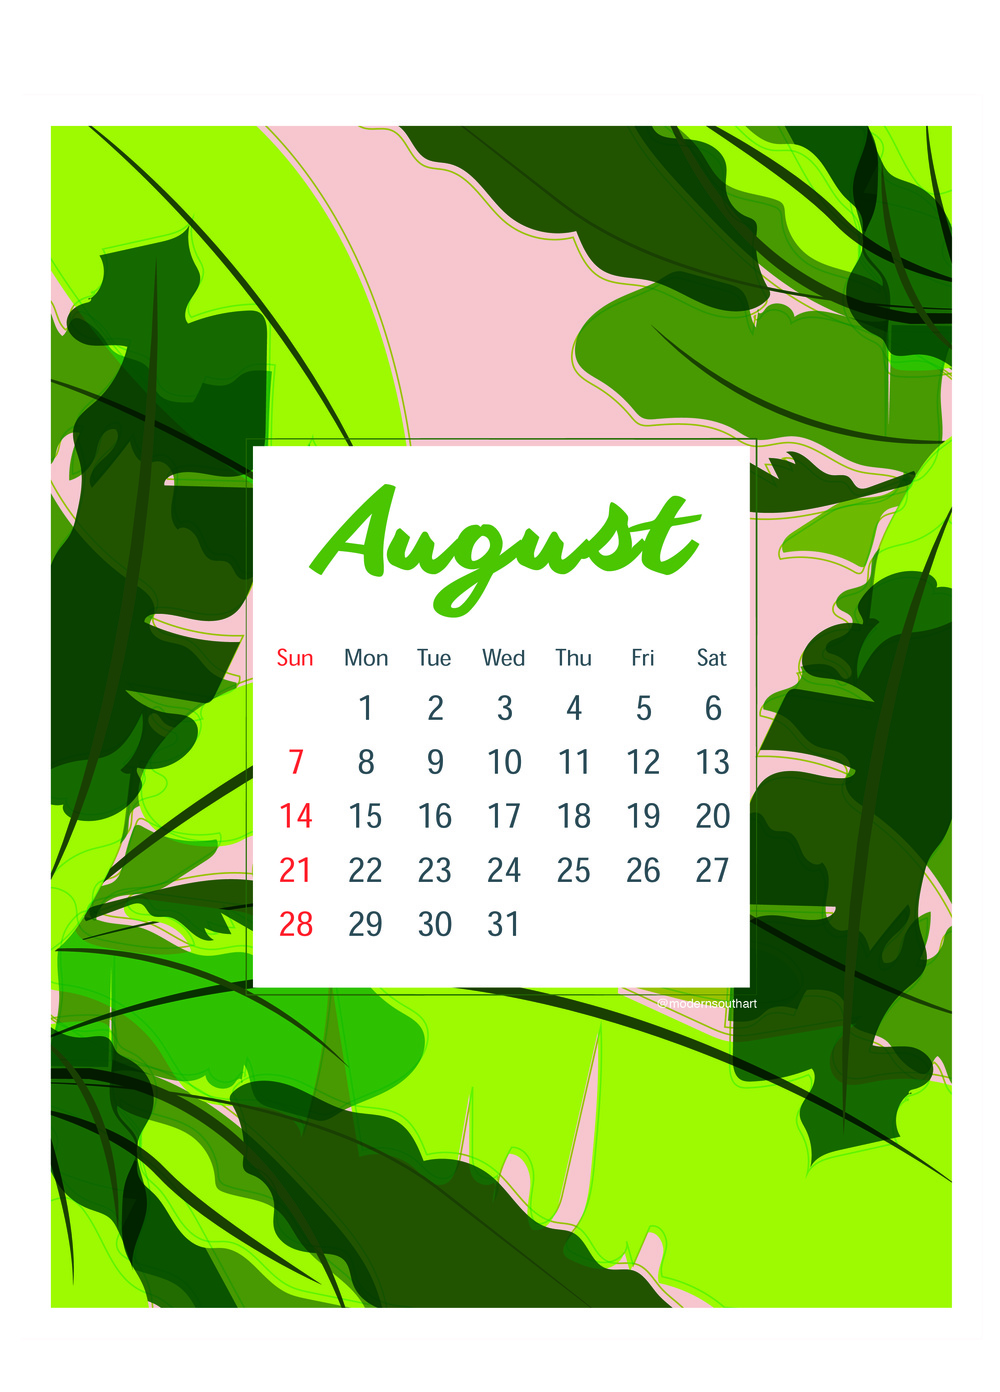 8.5 x 11 downloadable calendar by Modern South Art